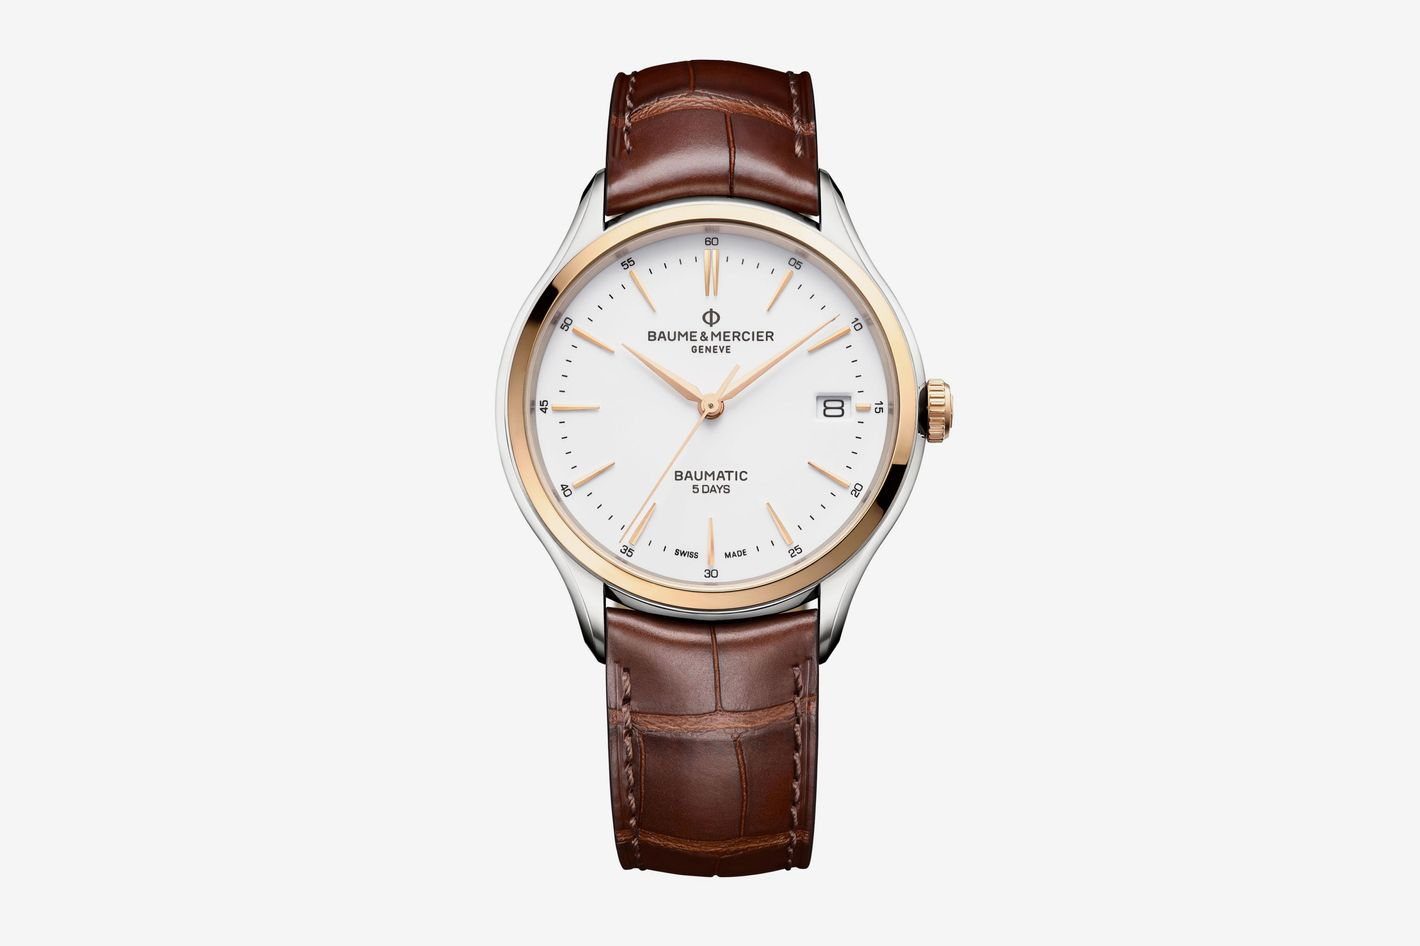 Clifton Baumatic Round 40mm Steel Watch